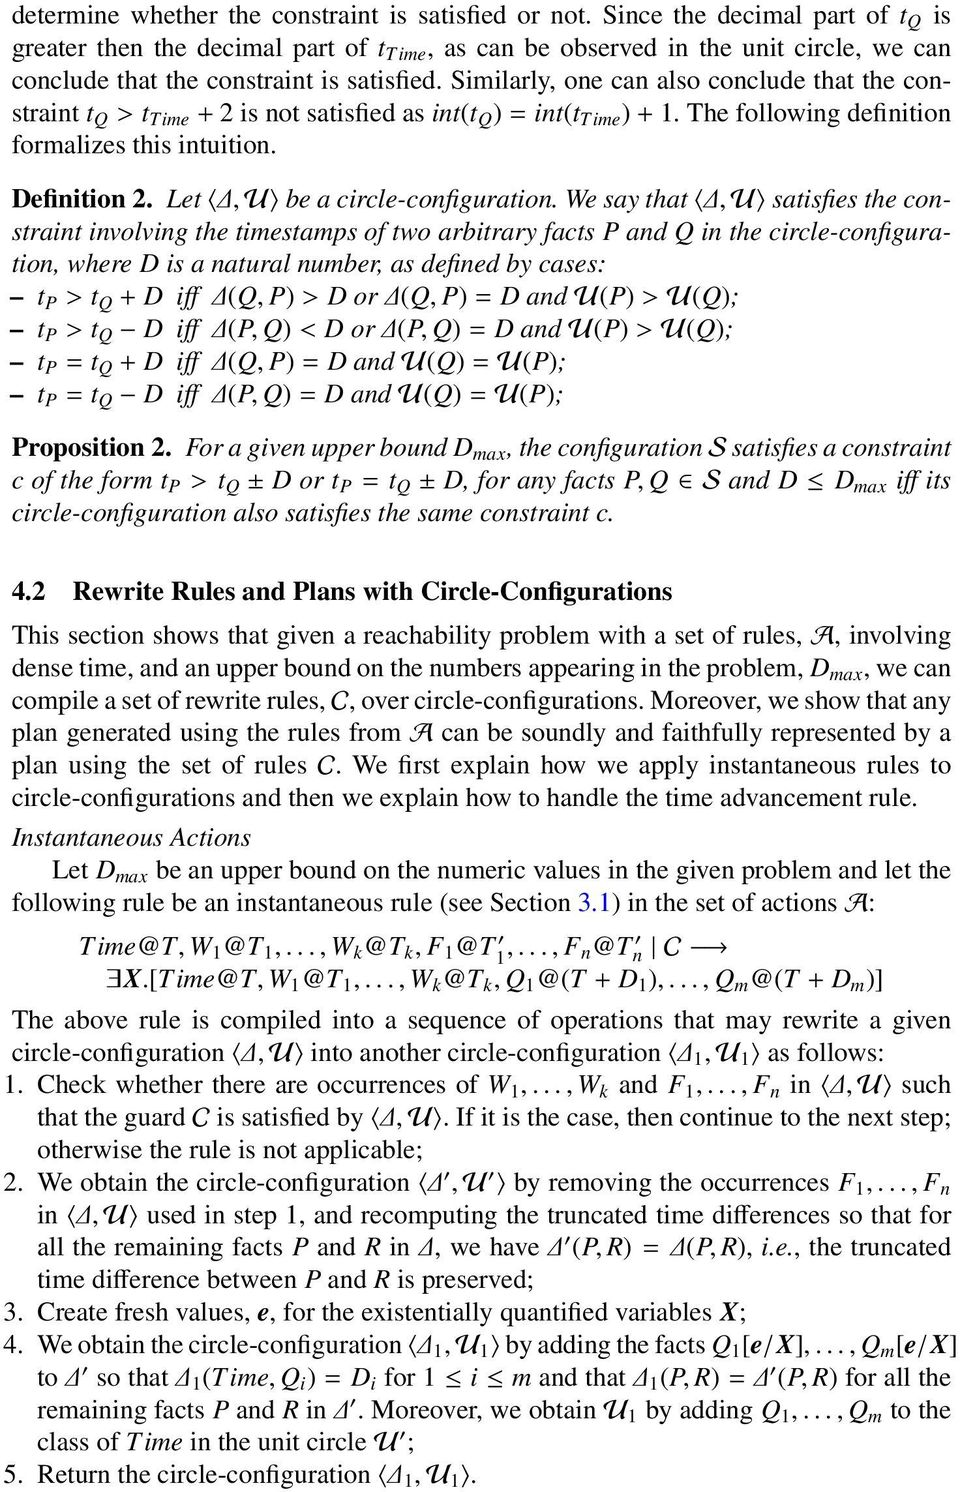 Similarly, one can also conclude that the constraint t Q > t Time + 2 is not satisfied as int(t Q ) = int(t Time ) + 1. The following definition formalizes this intuition. Definition 2.